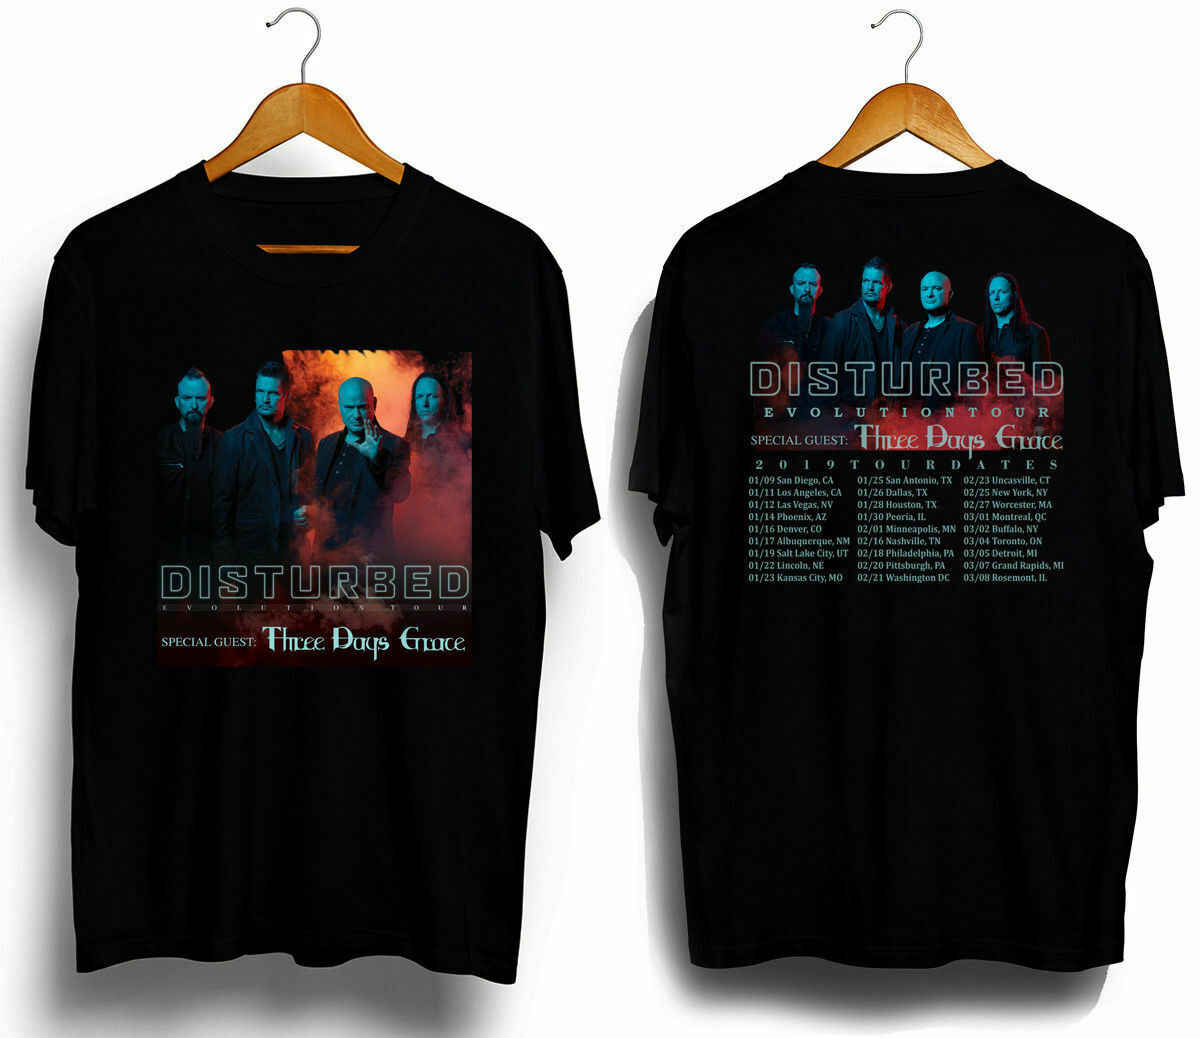 RARE ITEMS Disturbed and Three Days Grace Tour dates 2019 t-shirt S-3XL